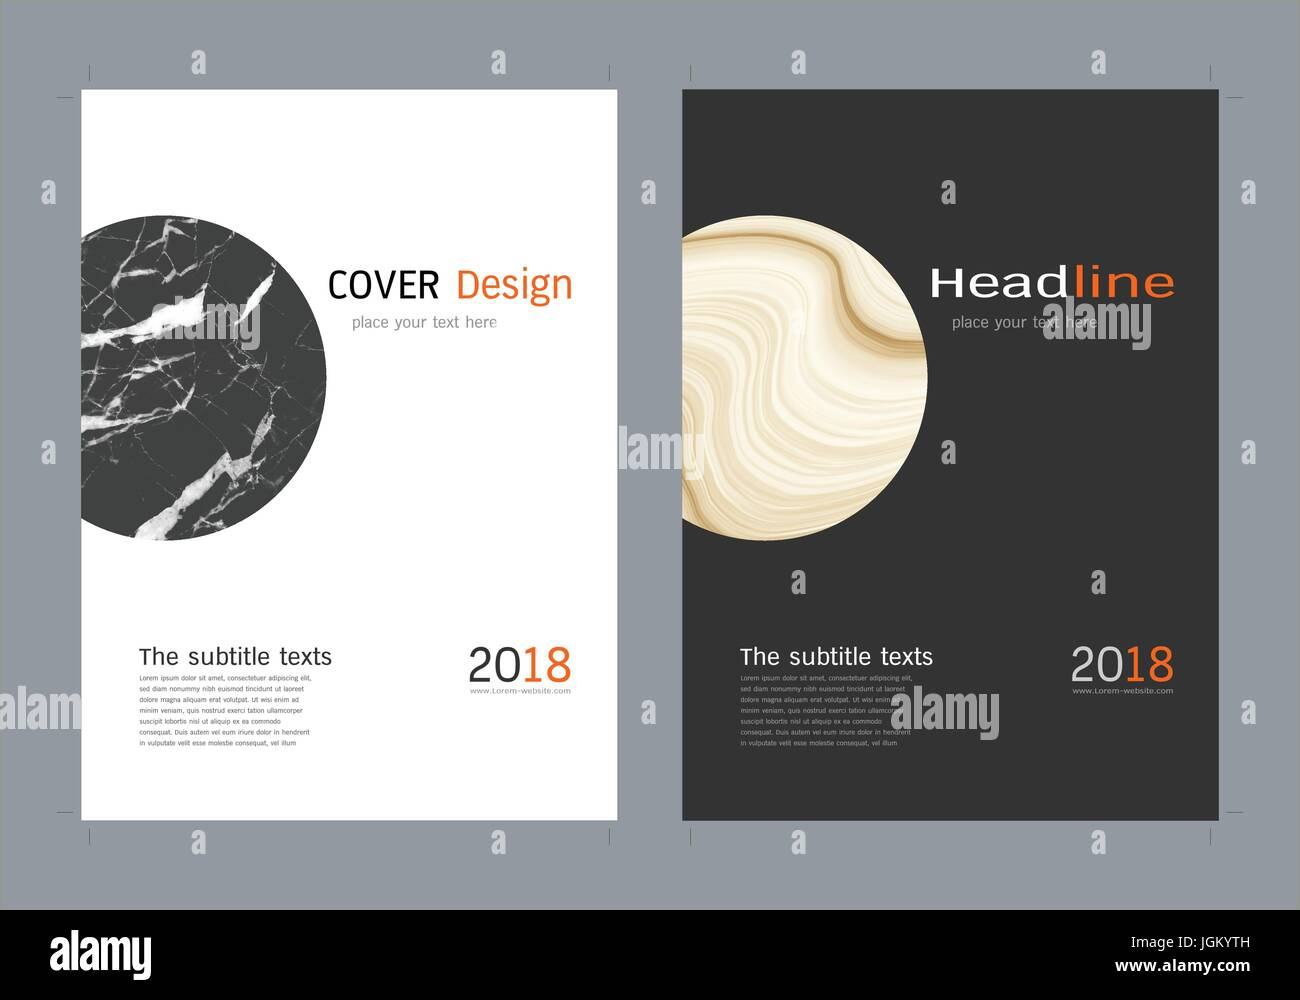 20 outstanding professional powerpoint templates | inspirationfeed.